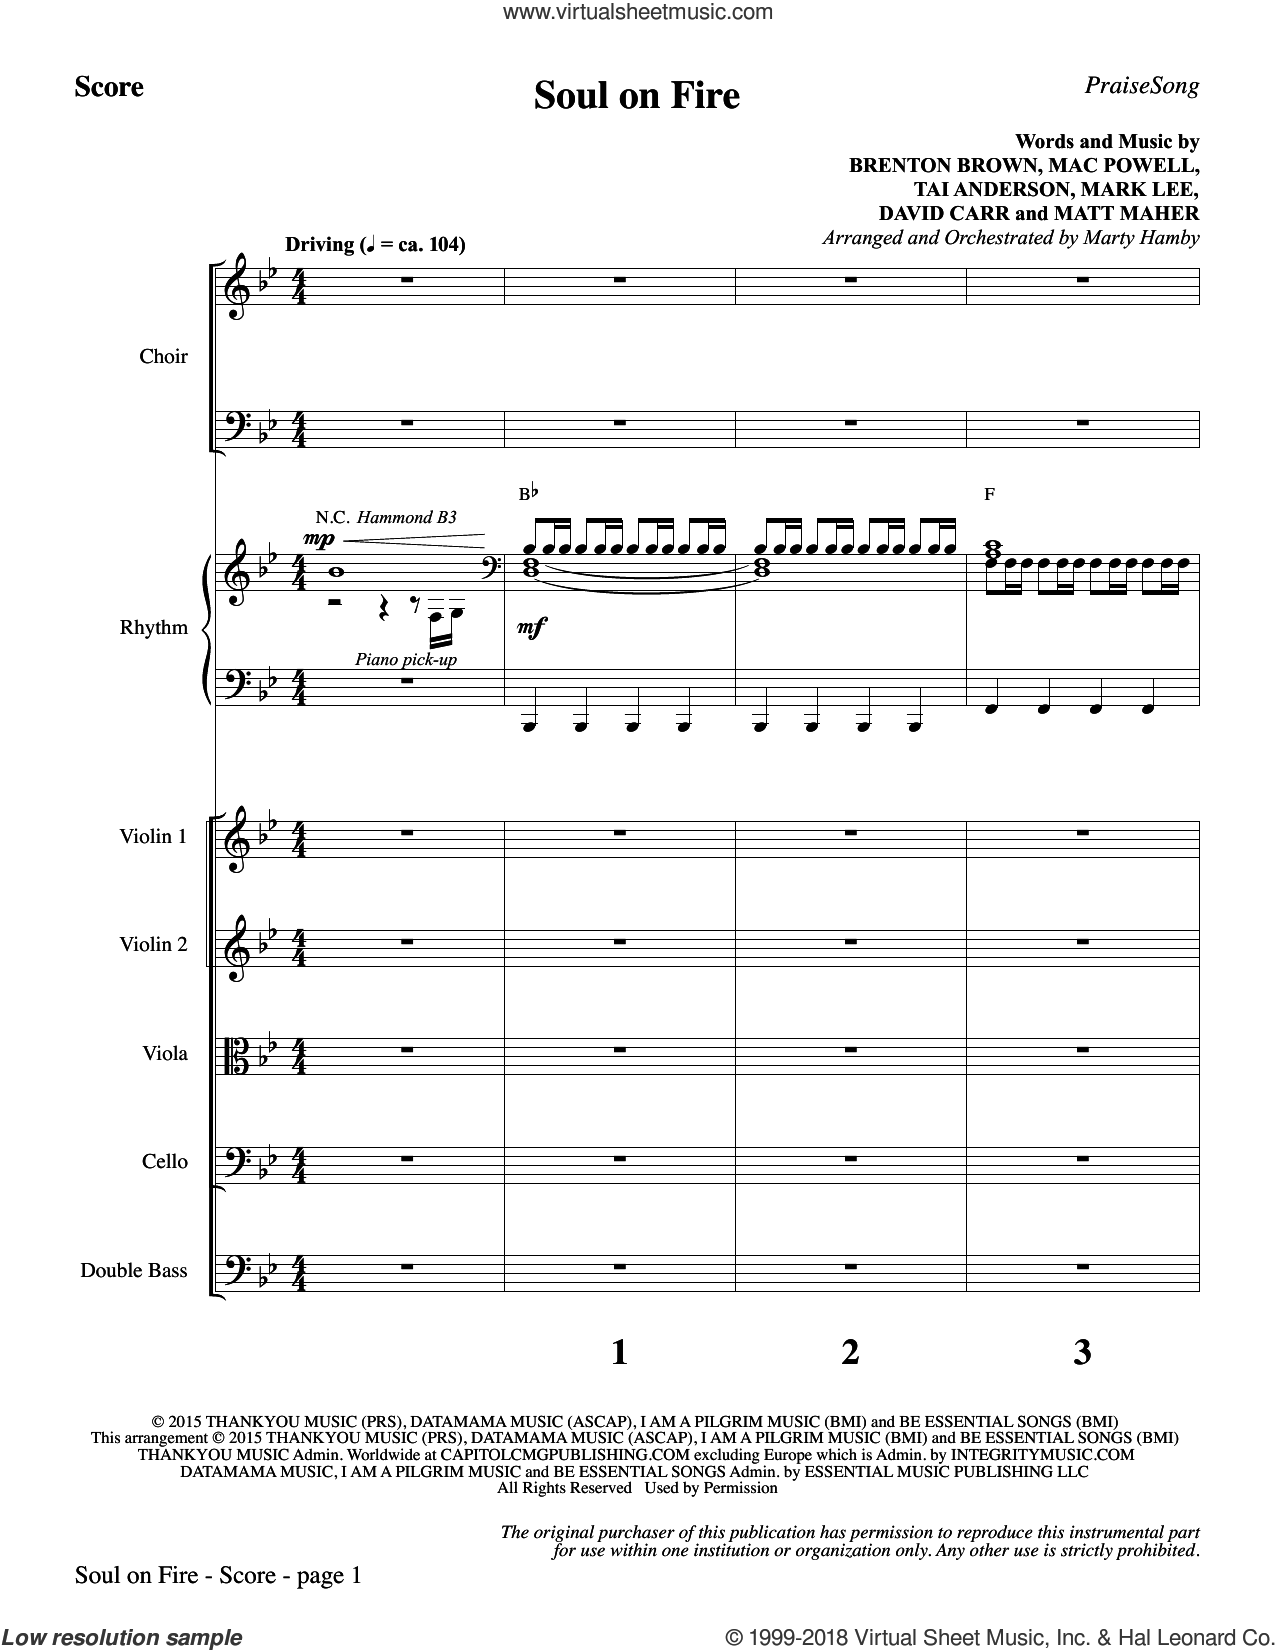 Soul on Fire (COMPLETE) sheet music for orchestra/band by Matt Maher, Brenton Brown, David Carr, Mac Powell, Mark Lee, Marty Hamby, Tai Anderson and Third Day, intermediate skill level